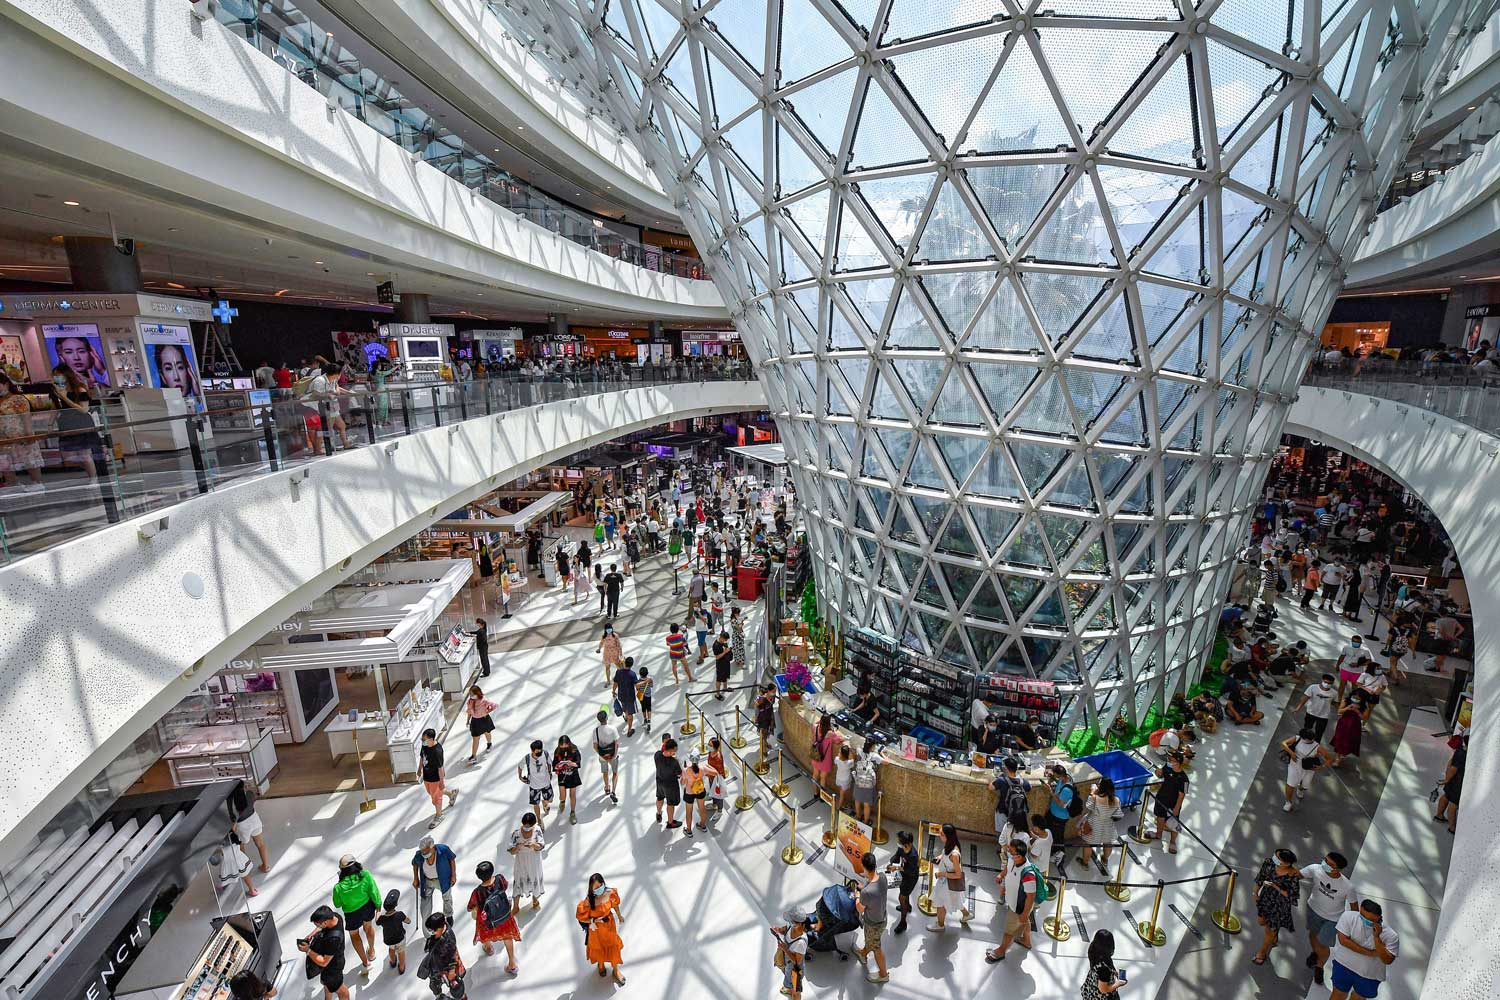 A duty-free mall in China's Hainan province, which is the new Mecca for luxury spenders in the region.